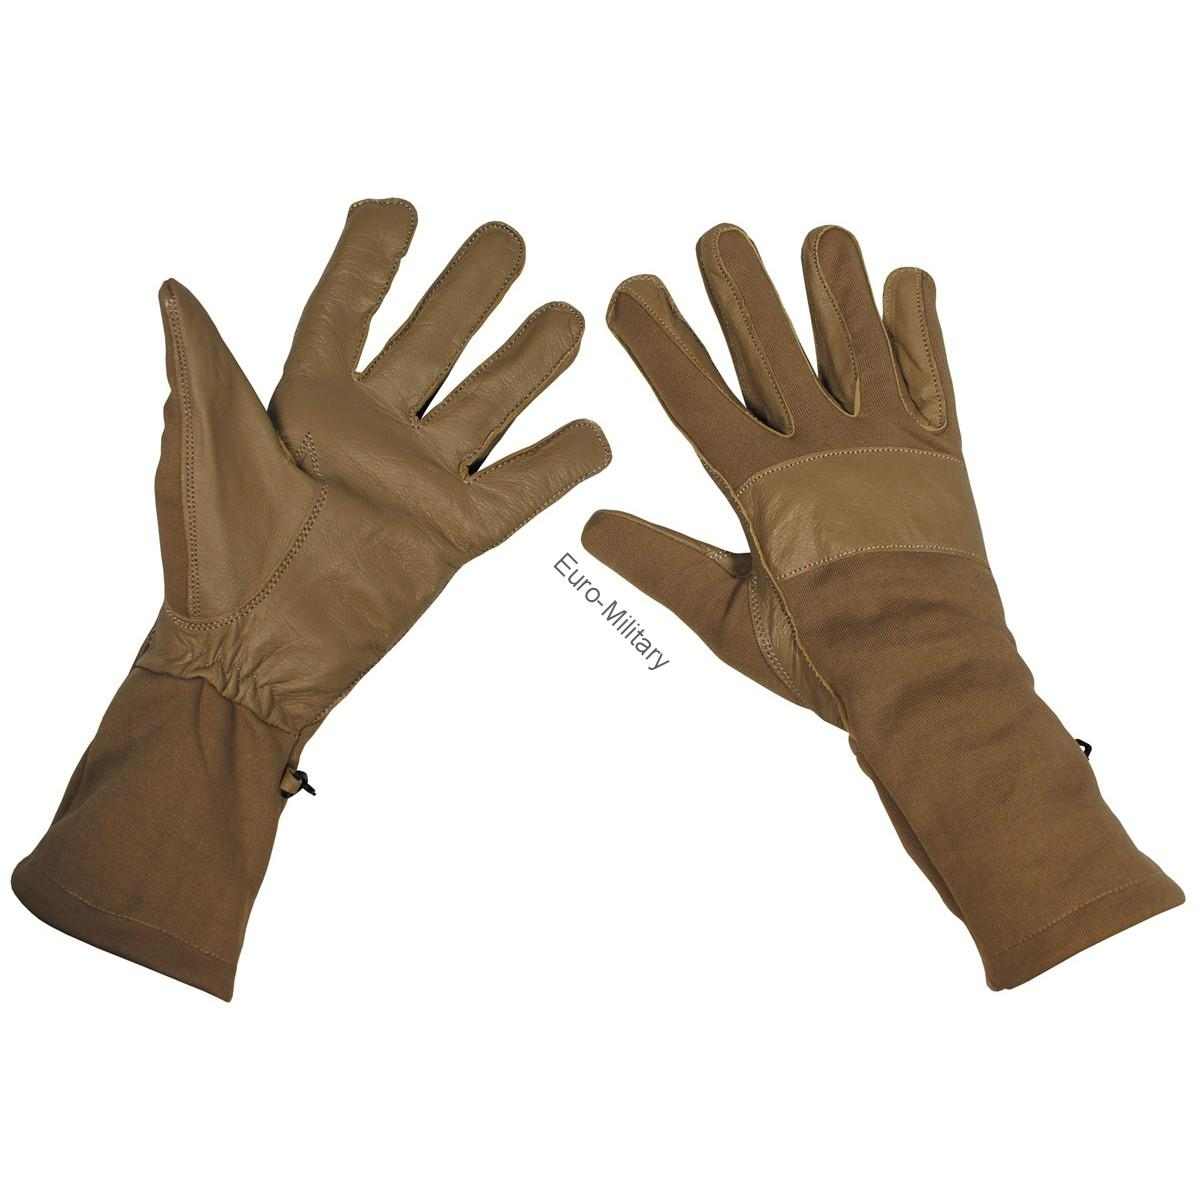 BW German Army Combat Gloves Long Gaiter Leather Trim - Coyote